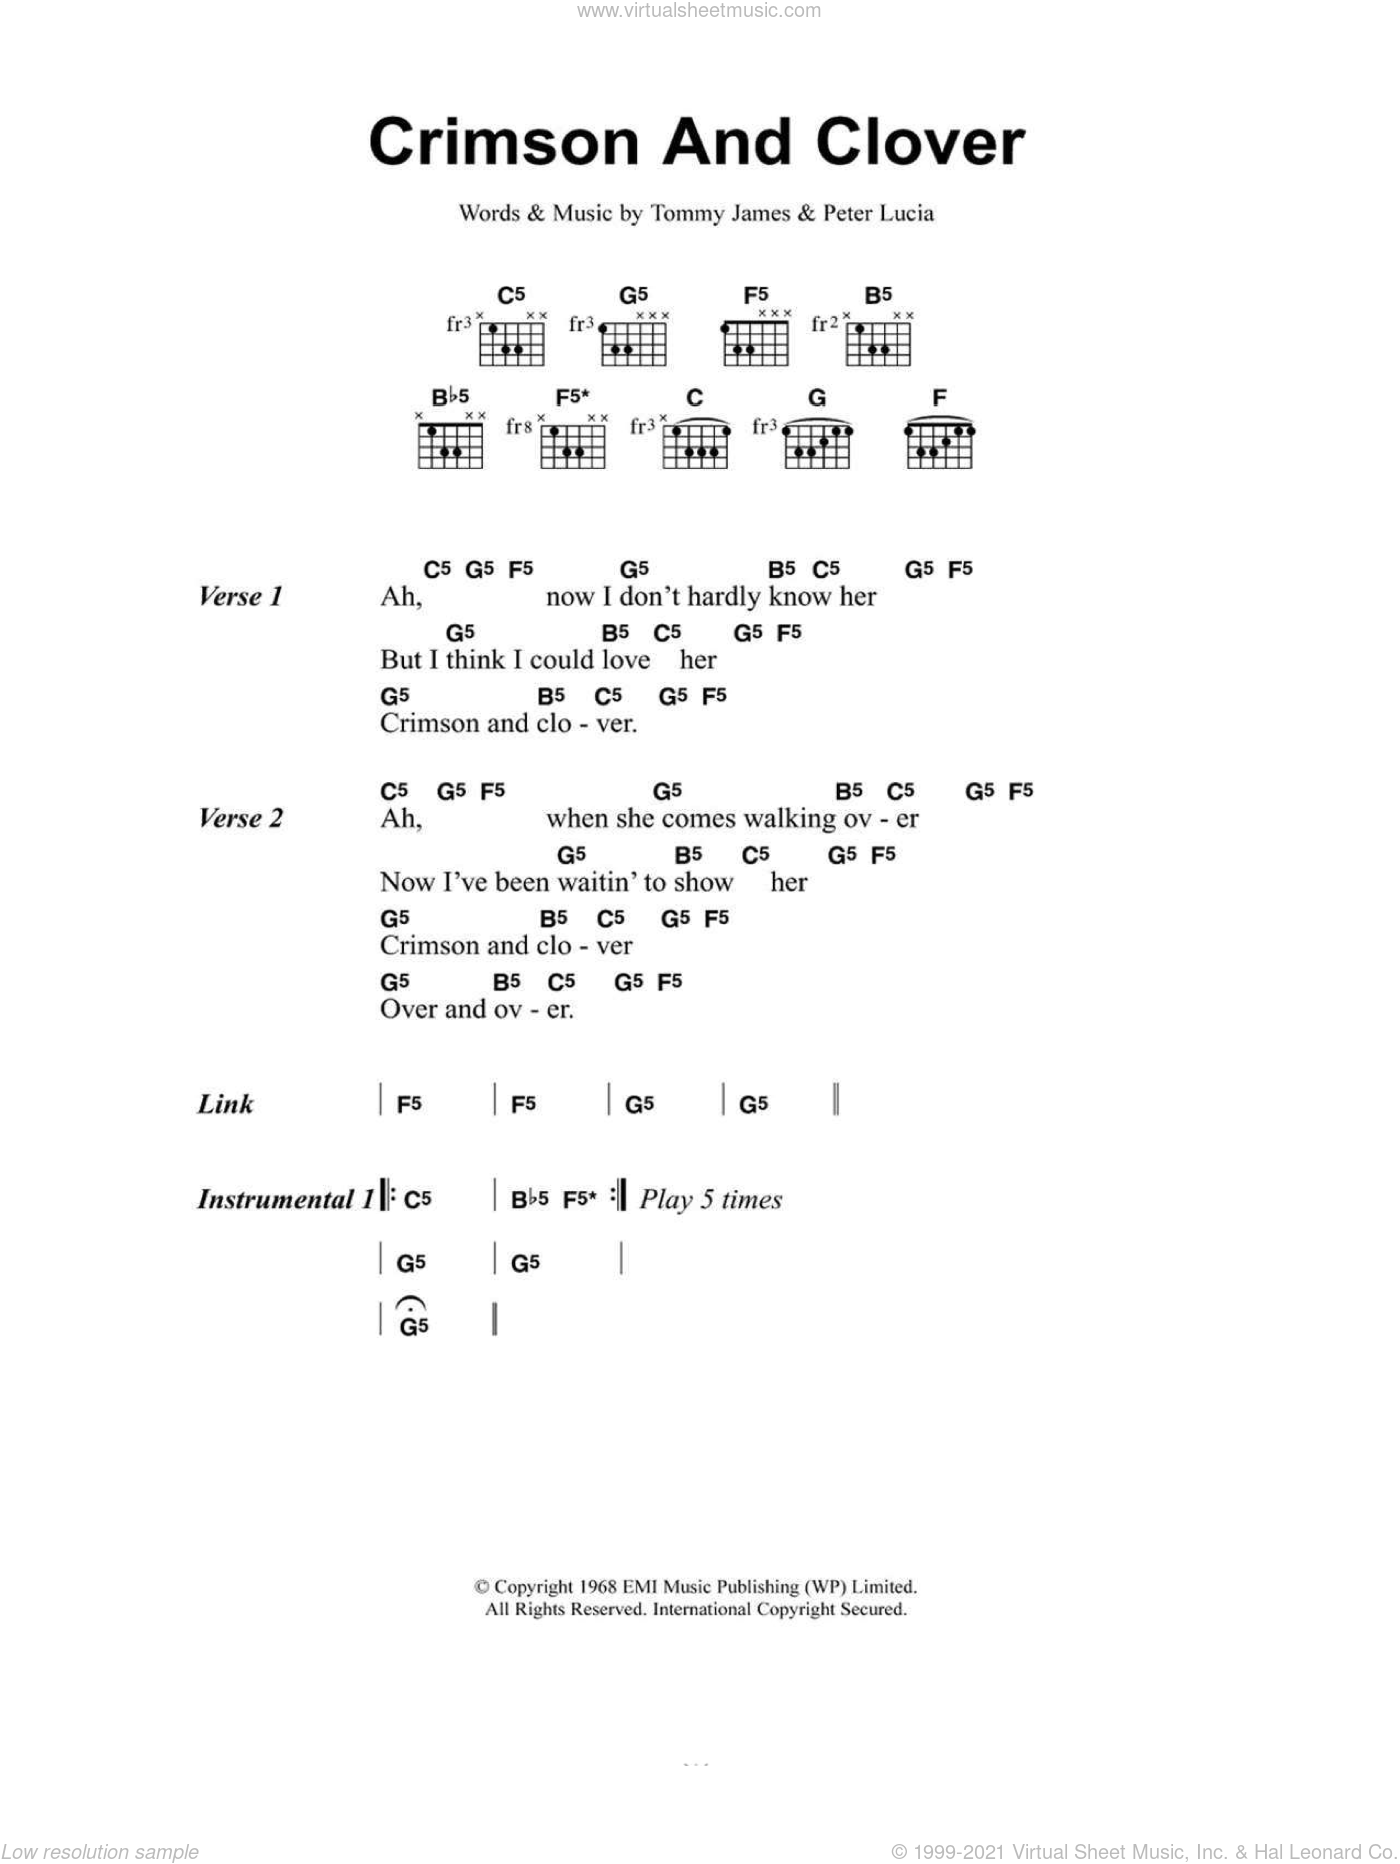 Crimson And Clover sheet music for guitar (chords) by Tommy James